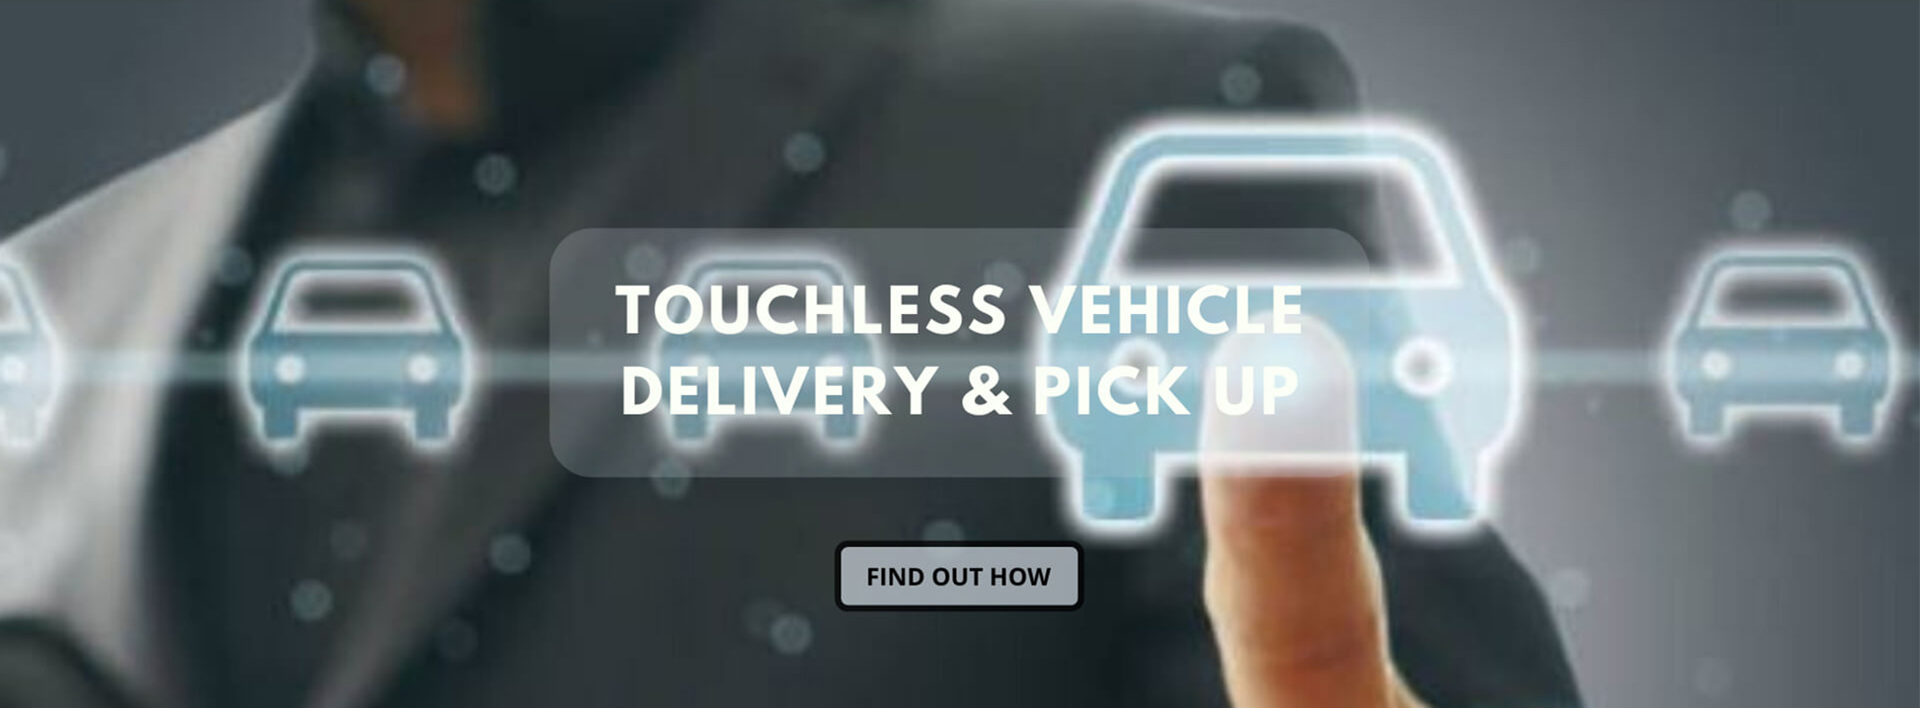 Alpine Motor Group has touchless vehicle delivery and pick up